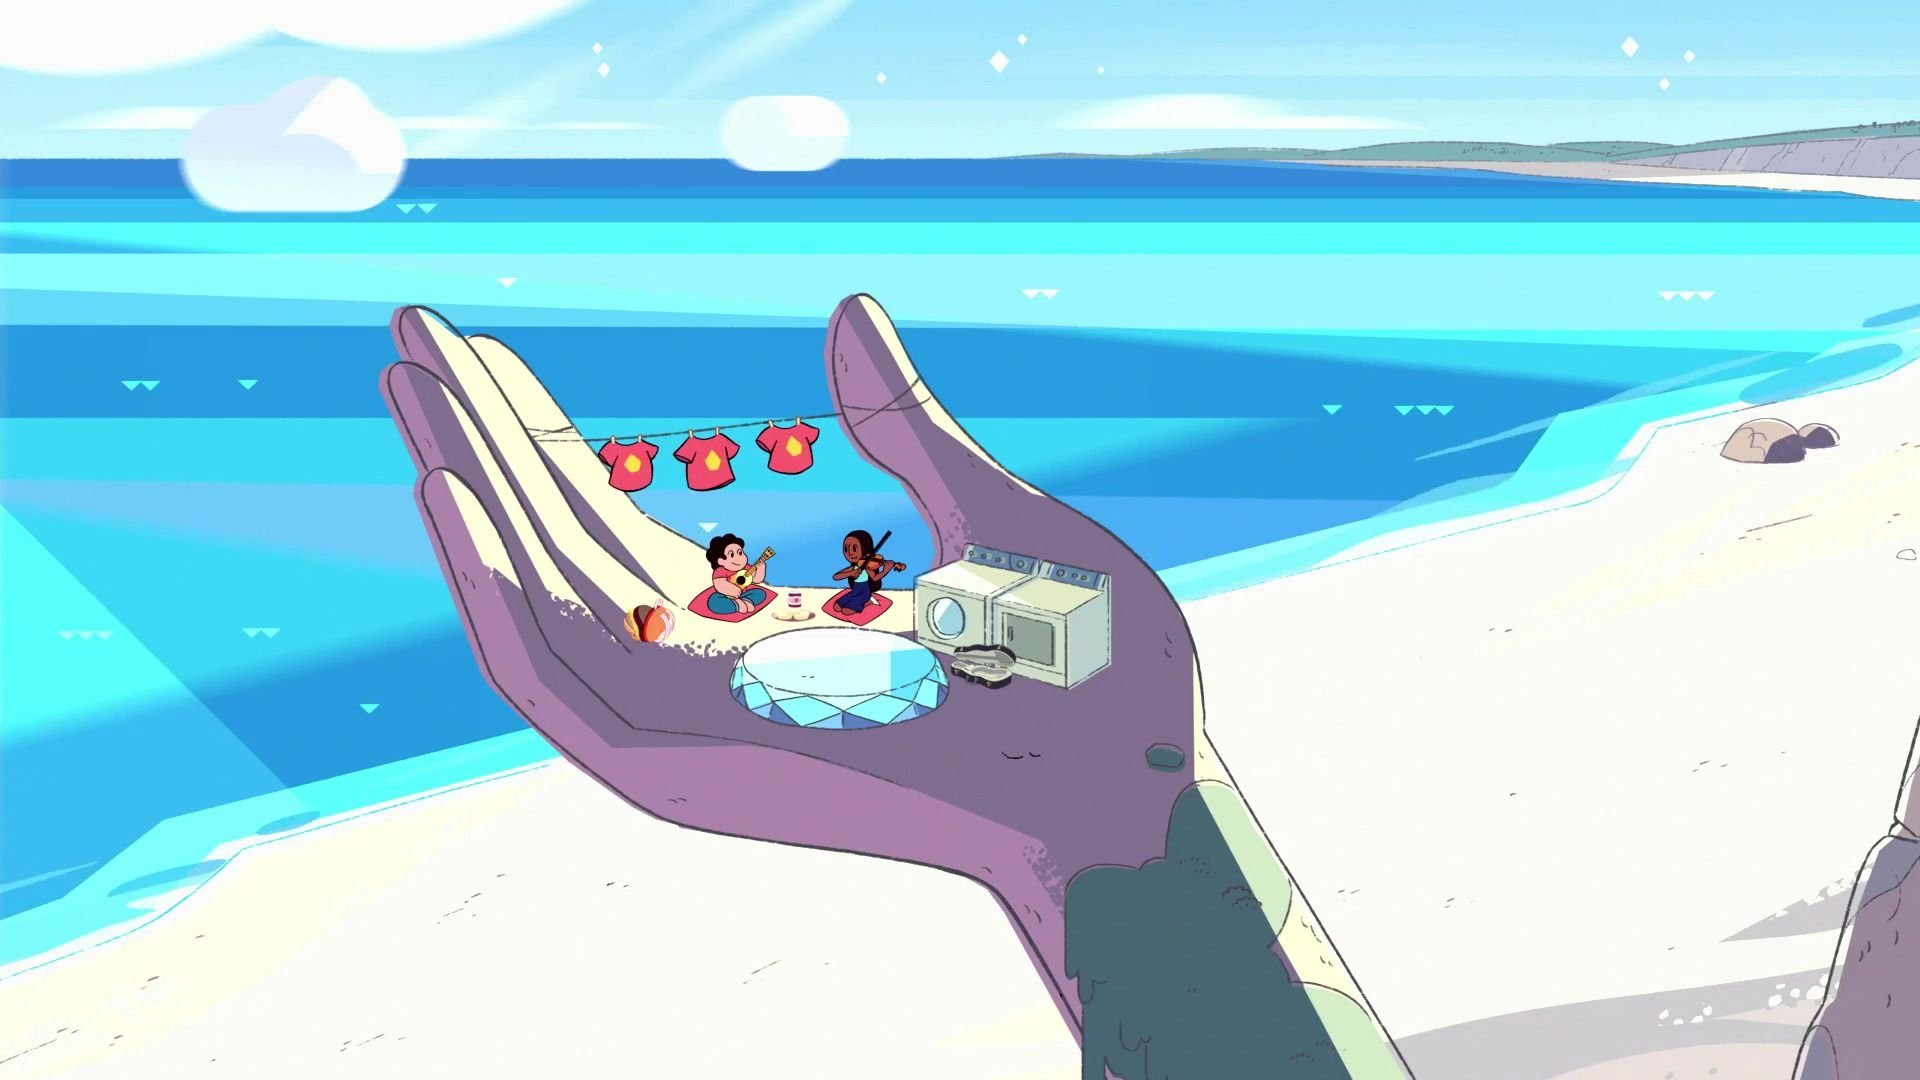 Steven Universe Hd Wallpapers Kolpaper Awesome Free Hd Wallpapers Looking for the best hd steven universe wallpaper? steven universe hd wallpapers